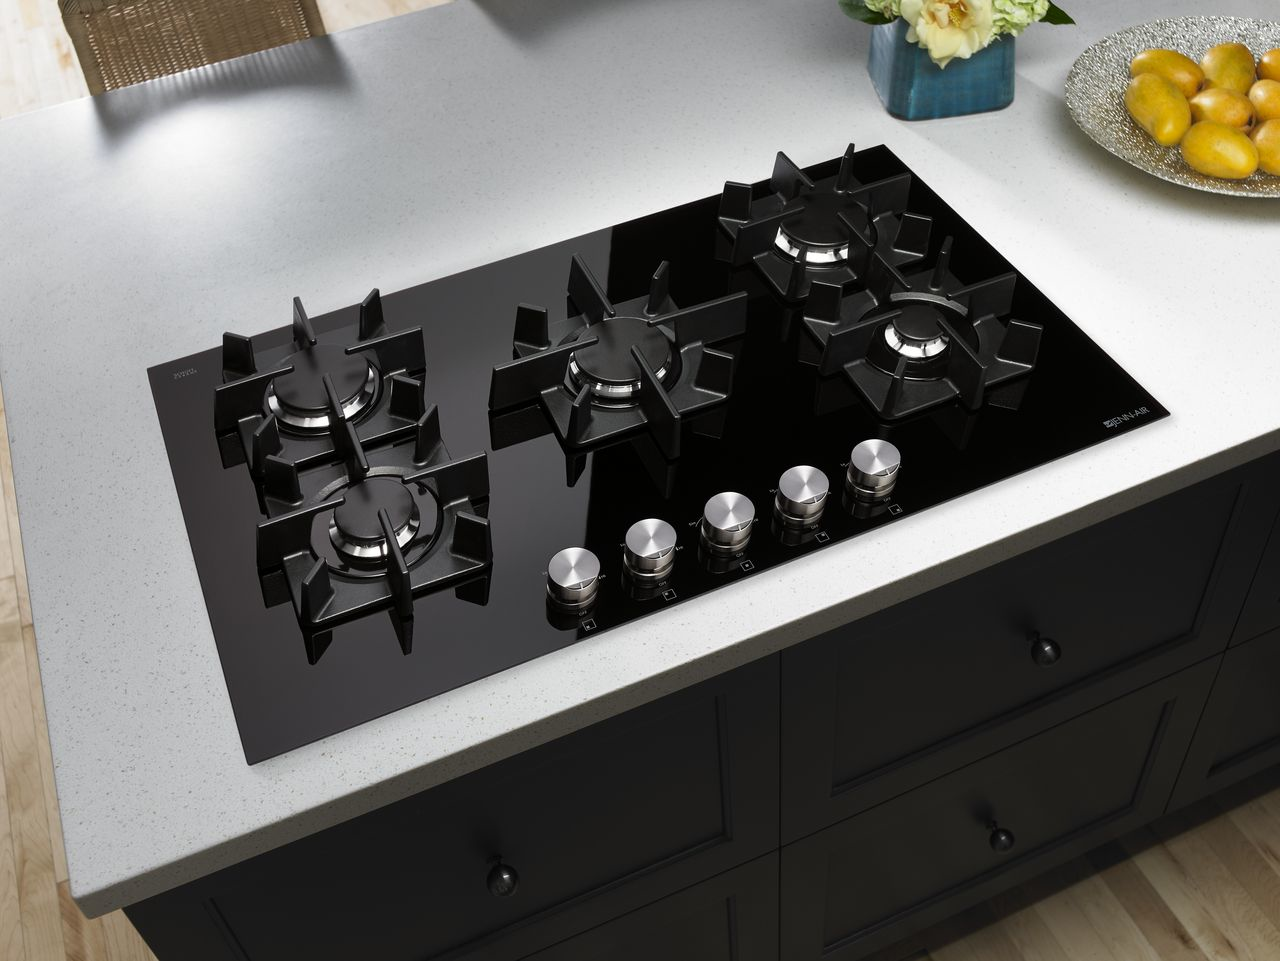 Glass Burner Gas Cooktop For Residential Pros